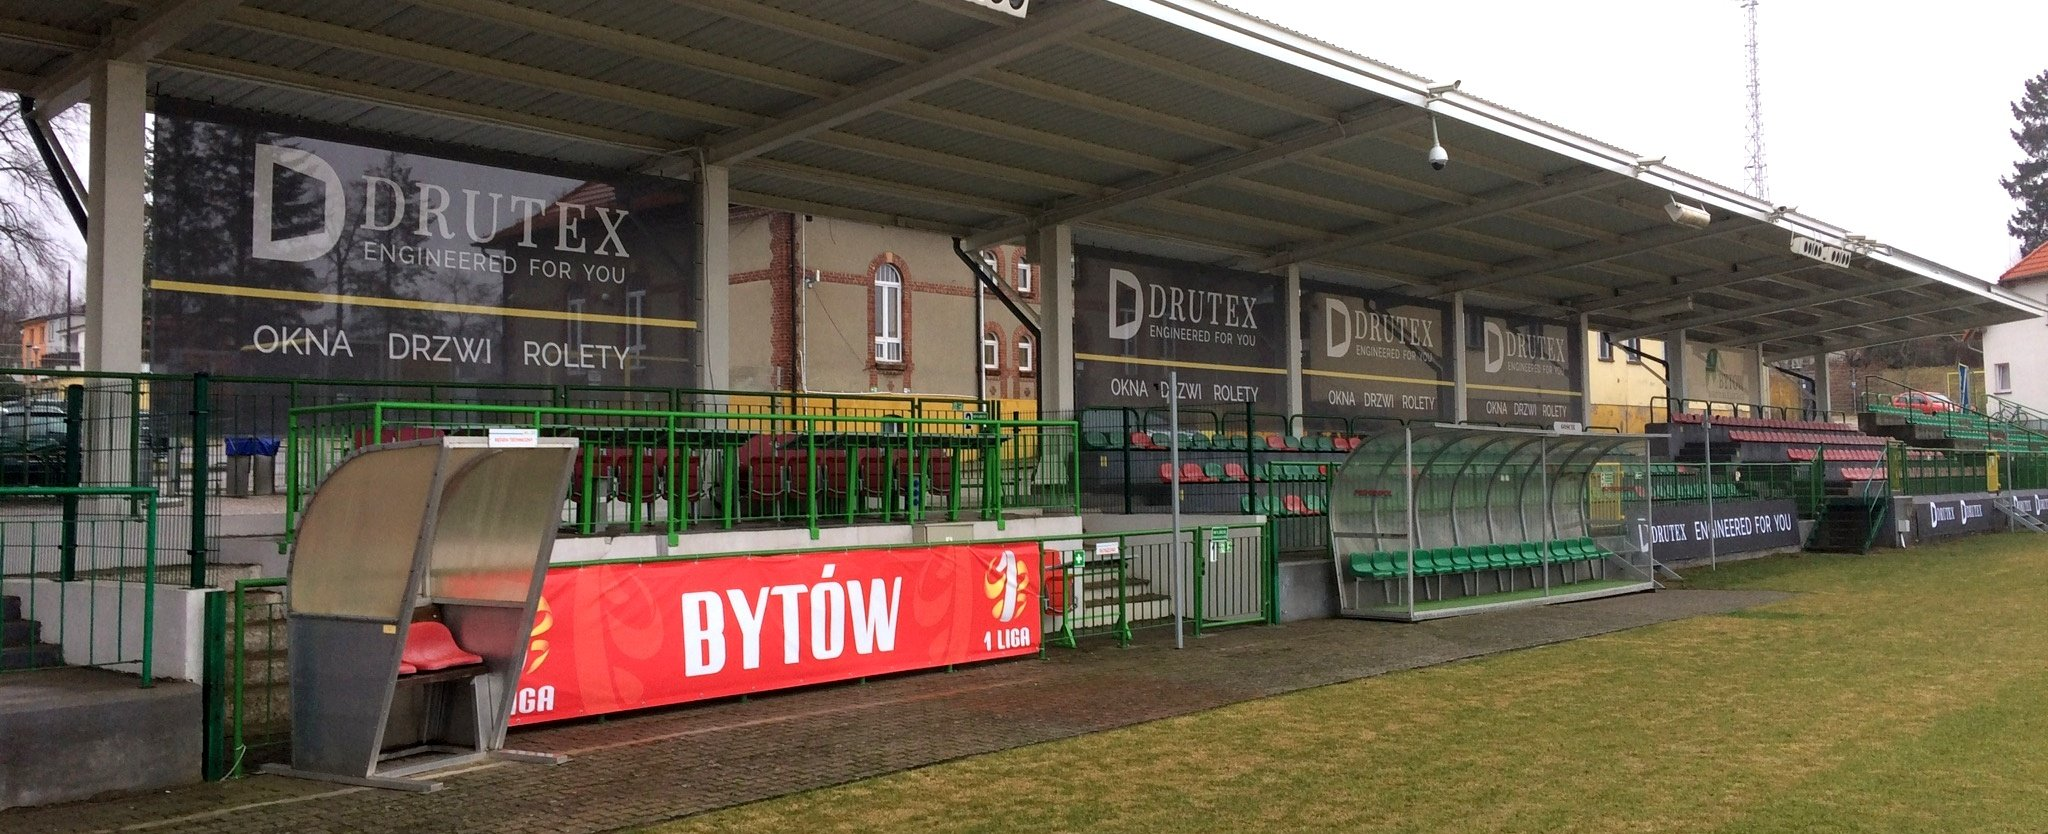 Drutex withdraws from sponsoring the first-division Drutex-Bytovia